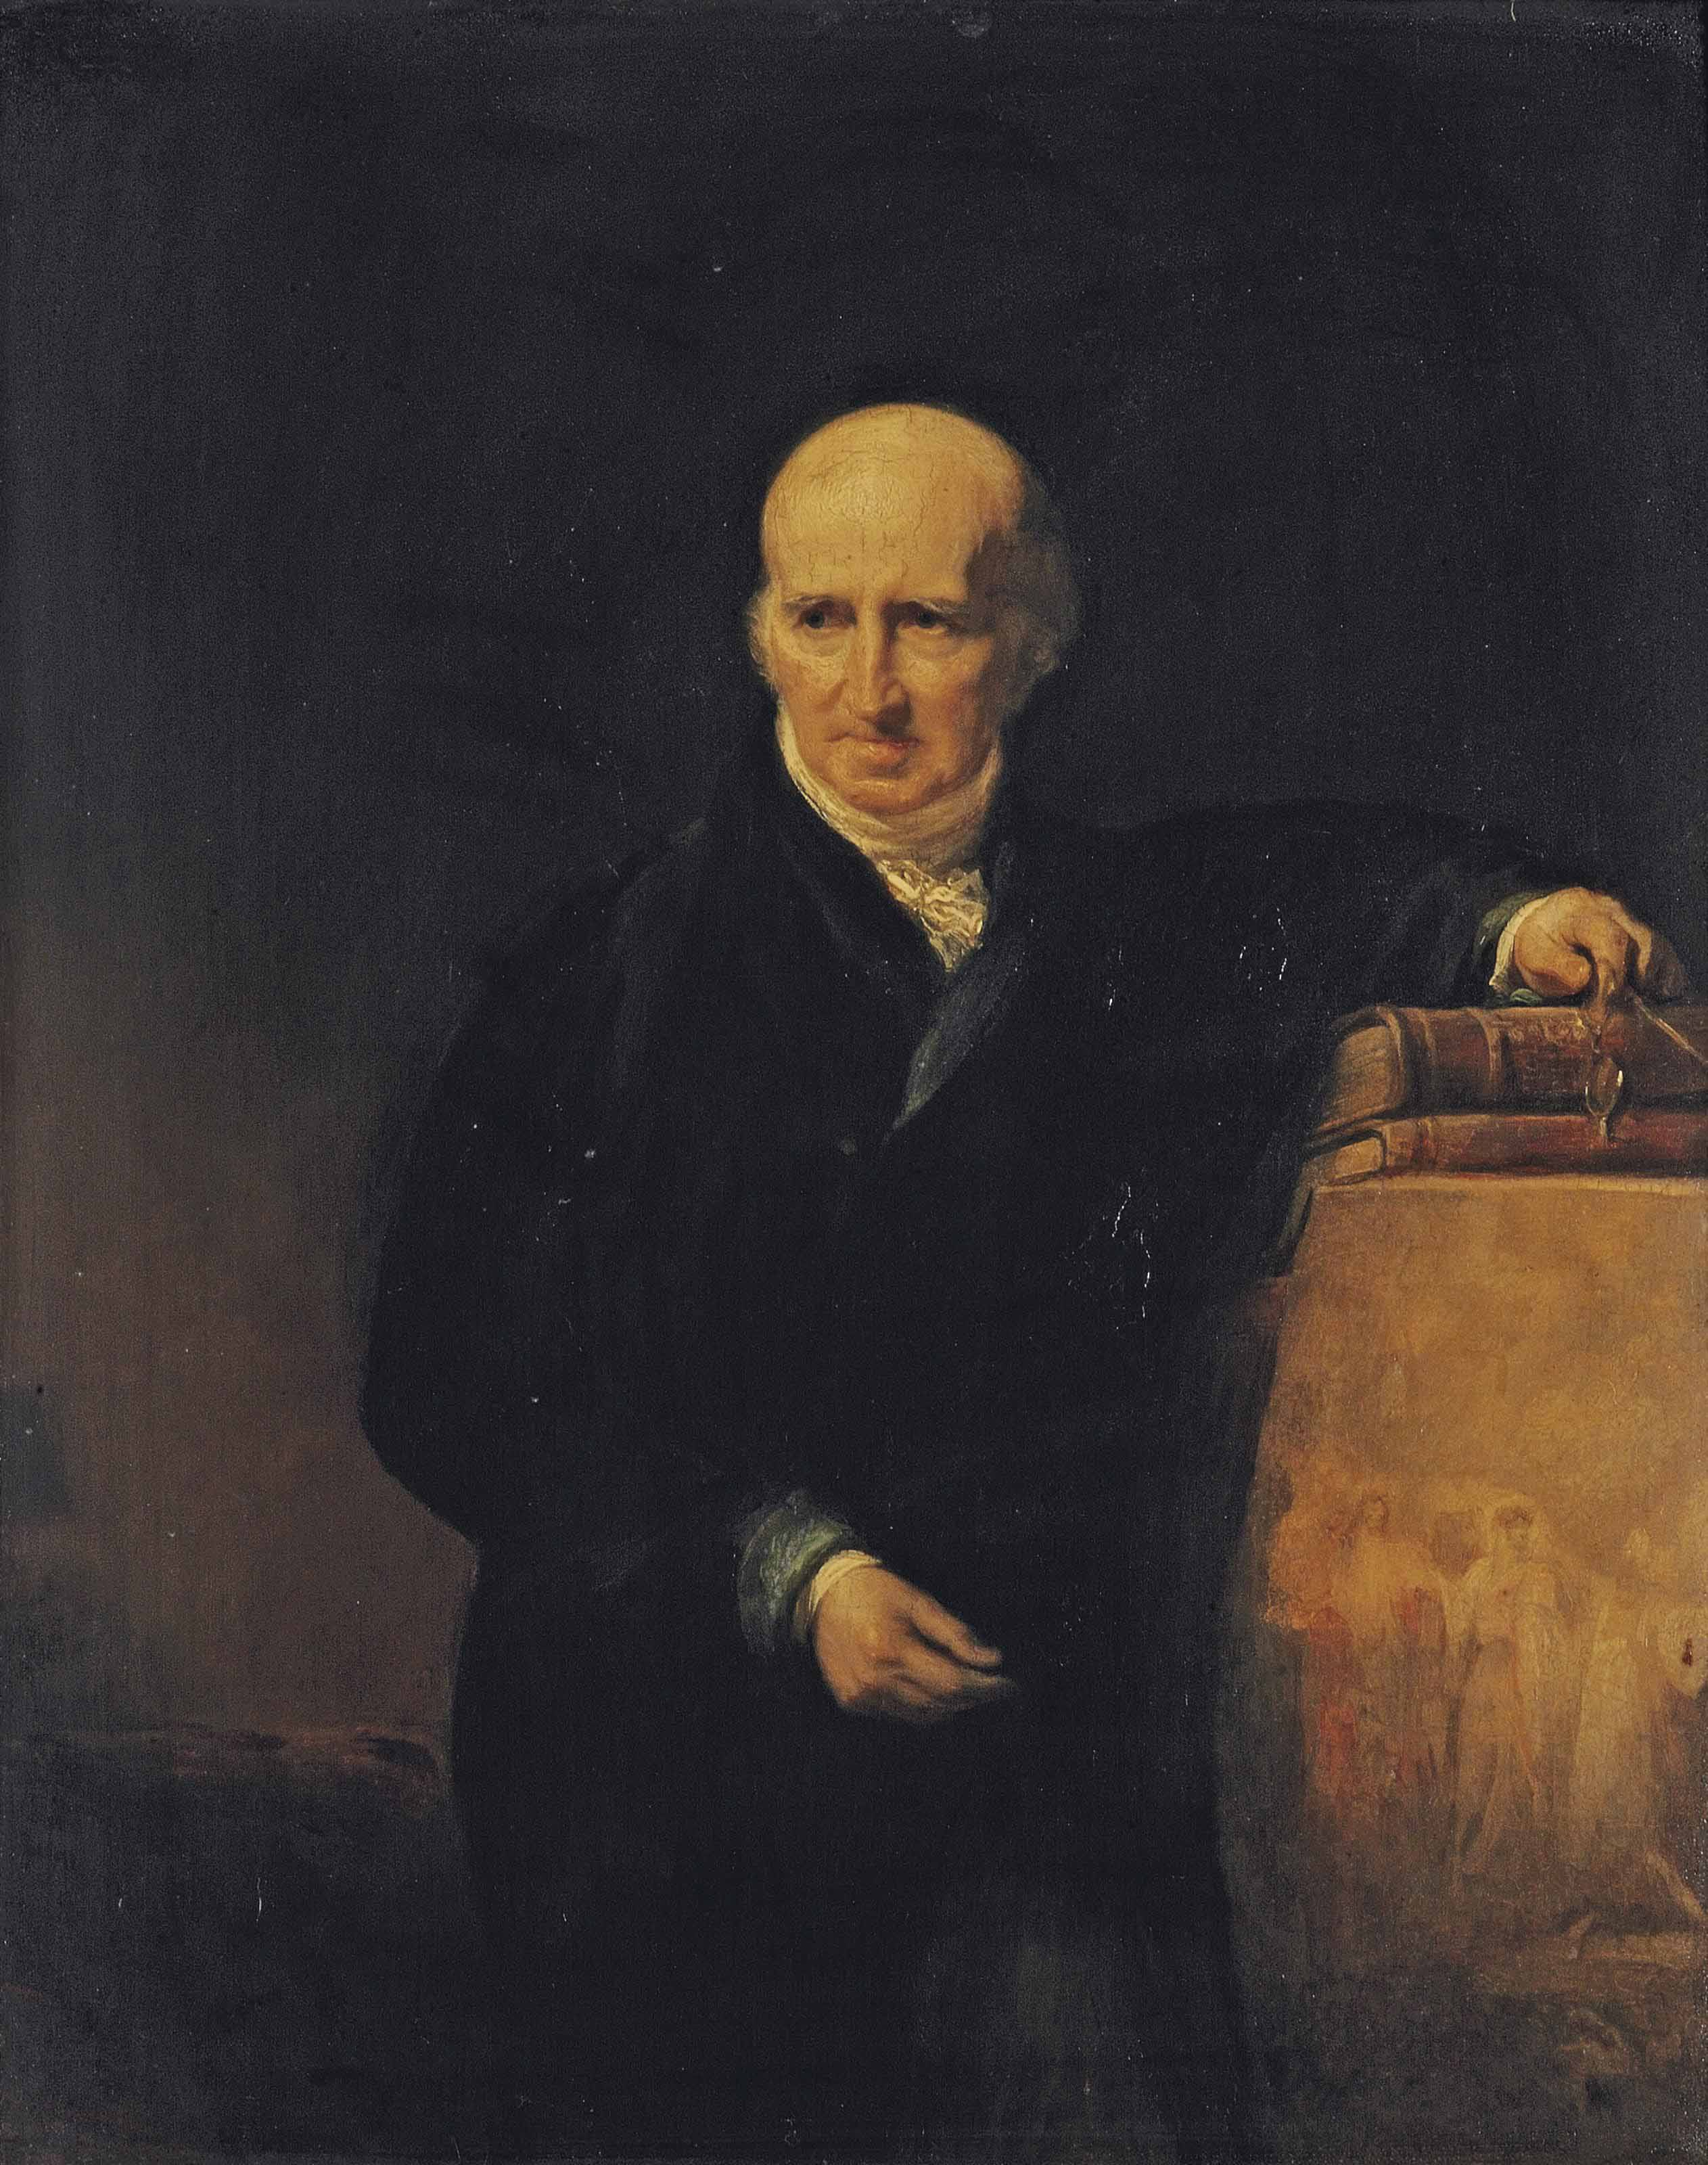 Portrait of Benjamin West P.R.A (1738-1820), half-length, in a black coat, his left hand resting on some books, a pair of spectacles in his right hand, beside a sketch of Christ Rejected